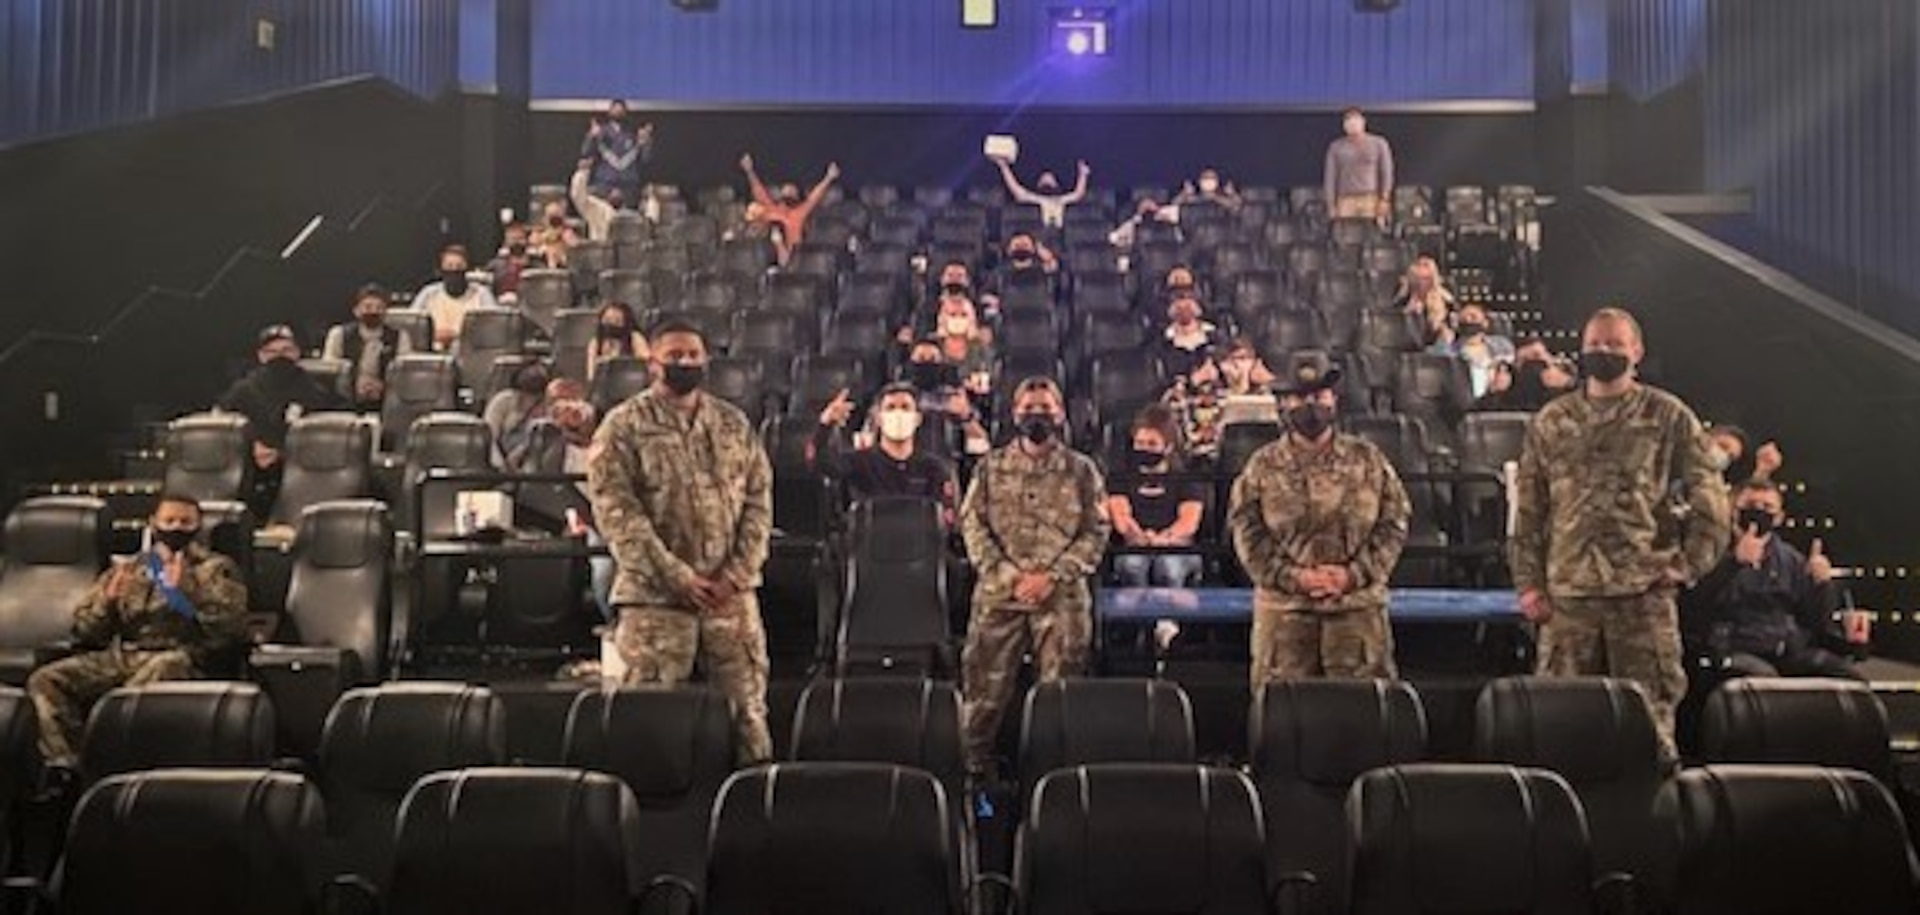 The USO Countdown to Christmas is a traditional USO San Antonio program offered annually to military students remaining in San Antonio during holiday block leave. This year's activities included private events, like viewing movies, in which the students could enjoy activities together in an environment which kept them safe throughout the evolving safety regulations of COVID-19.